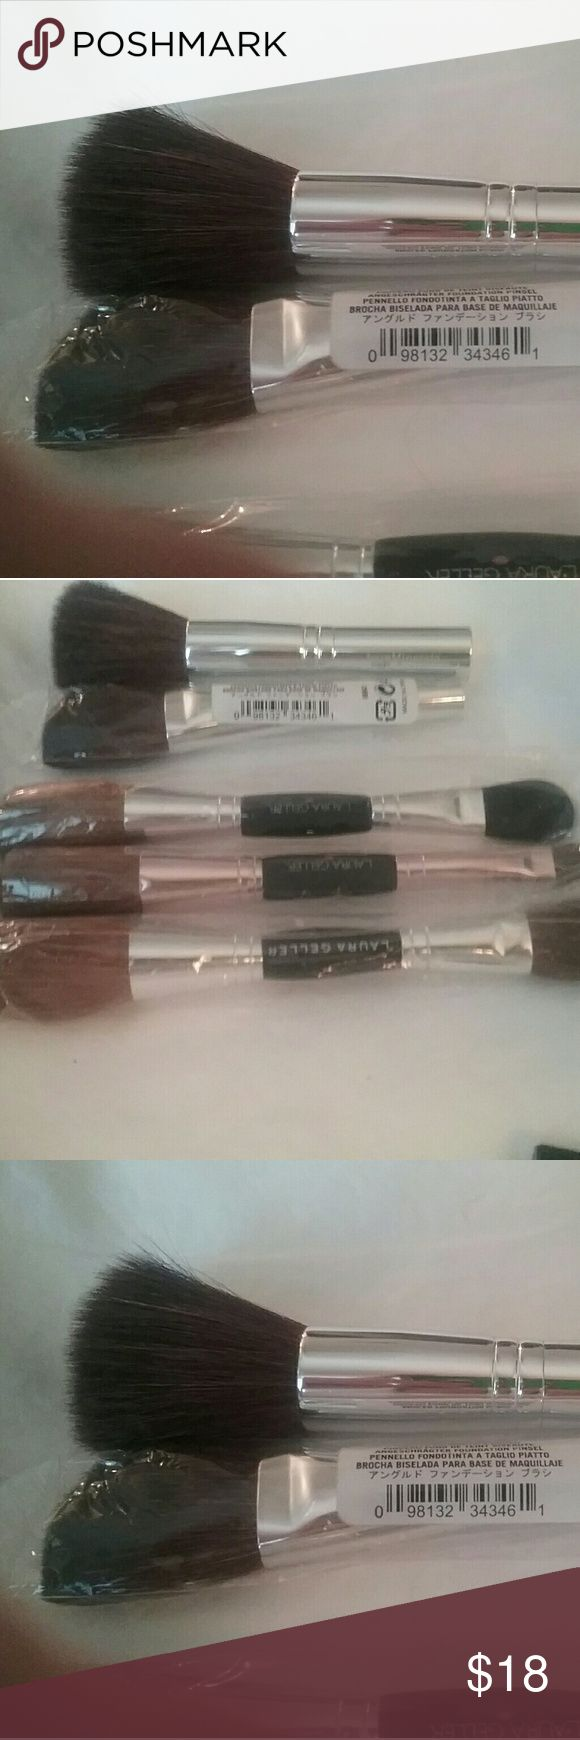 NWOT Bare Minerals Brushes SPRING SALE!! Two NWOT Bare Minerals Brushes. One is for foundation application,  the other is contouring brush. Purchased together  $ 14.0000 for the set. Purchased separately,  $8.00 each.  All reasonable offers welcome. NO LOWBALL OFFERS! Bare Minerals  Makeup Brushes & Tools